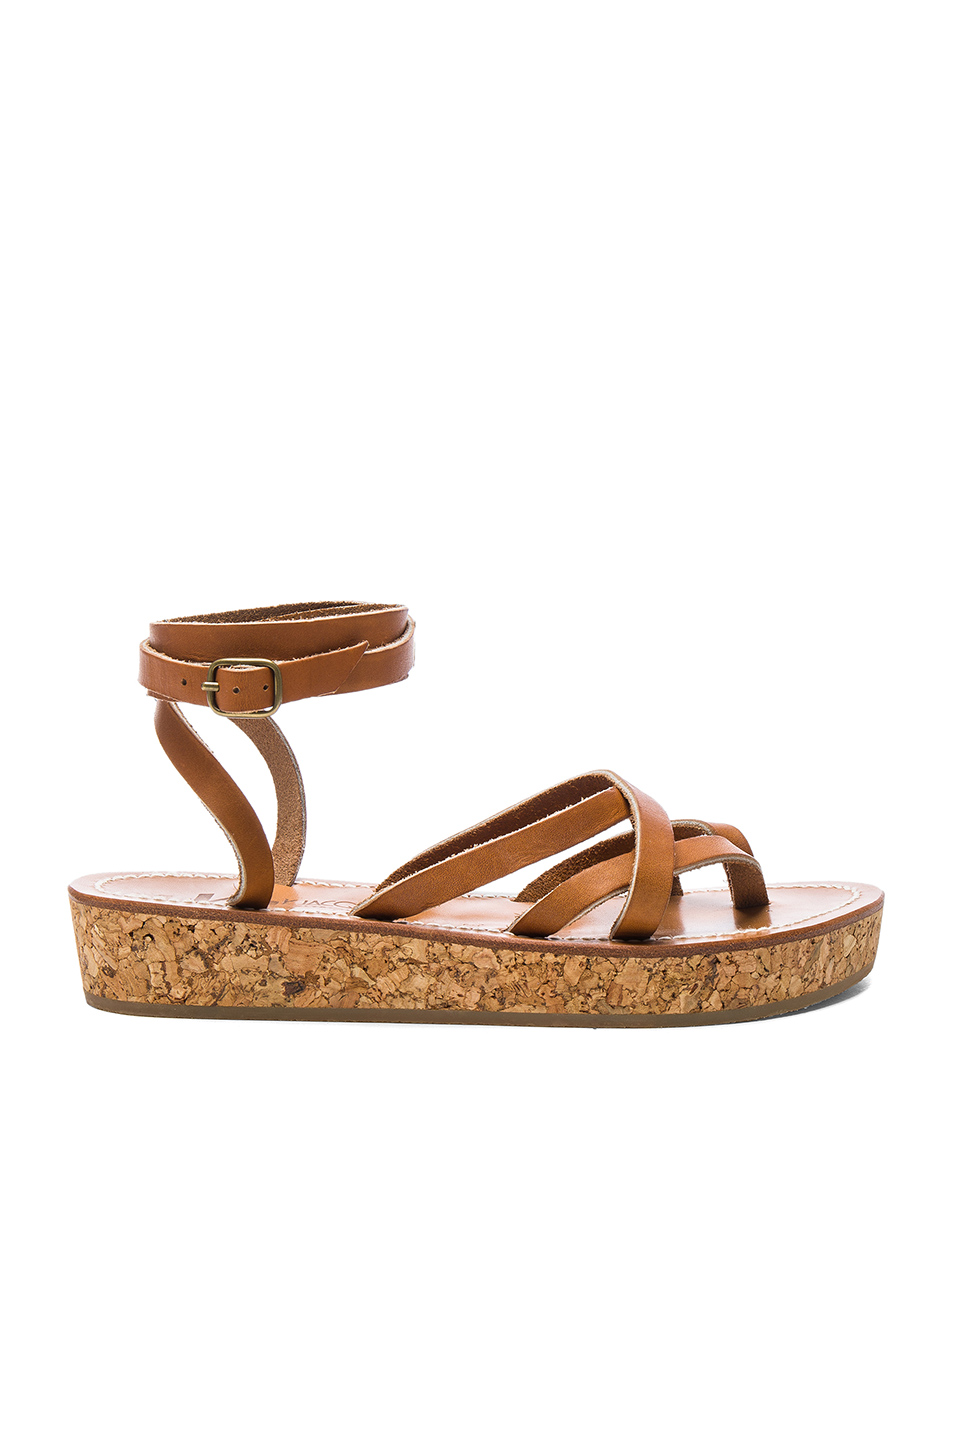 K Jacques Leather Avila Sandals in Neutrals